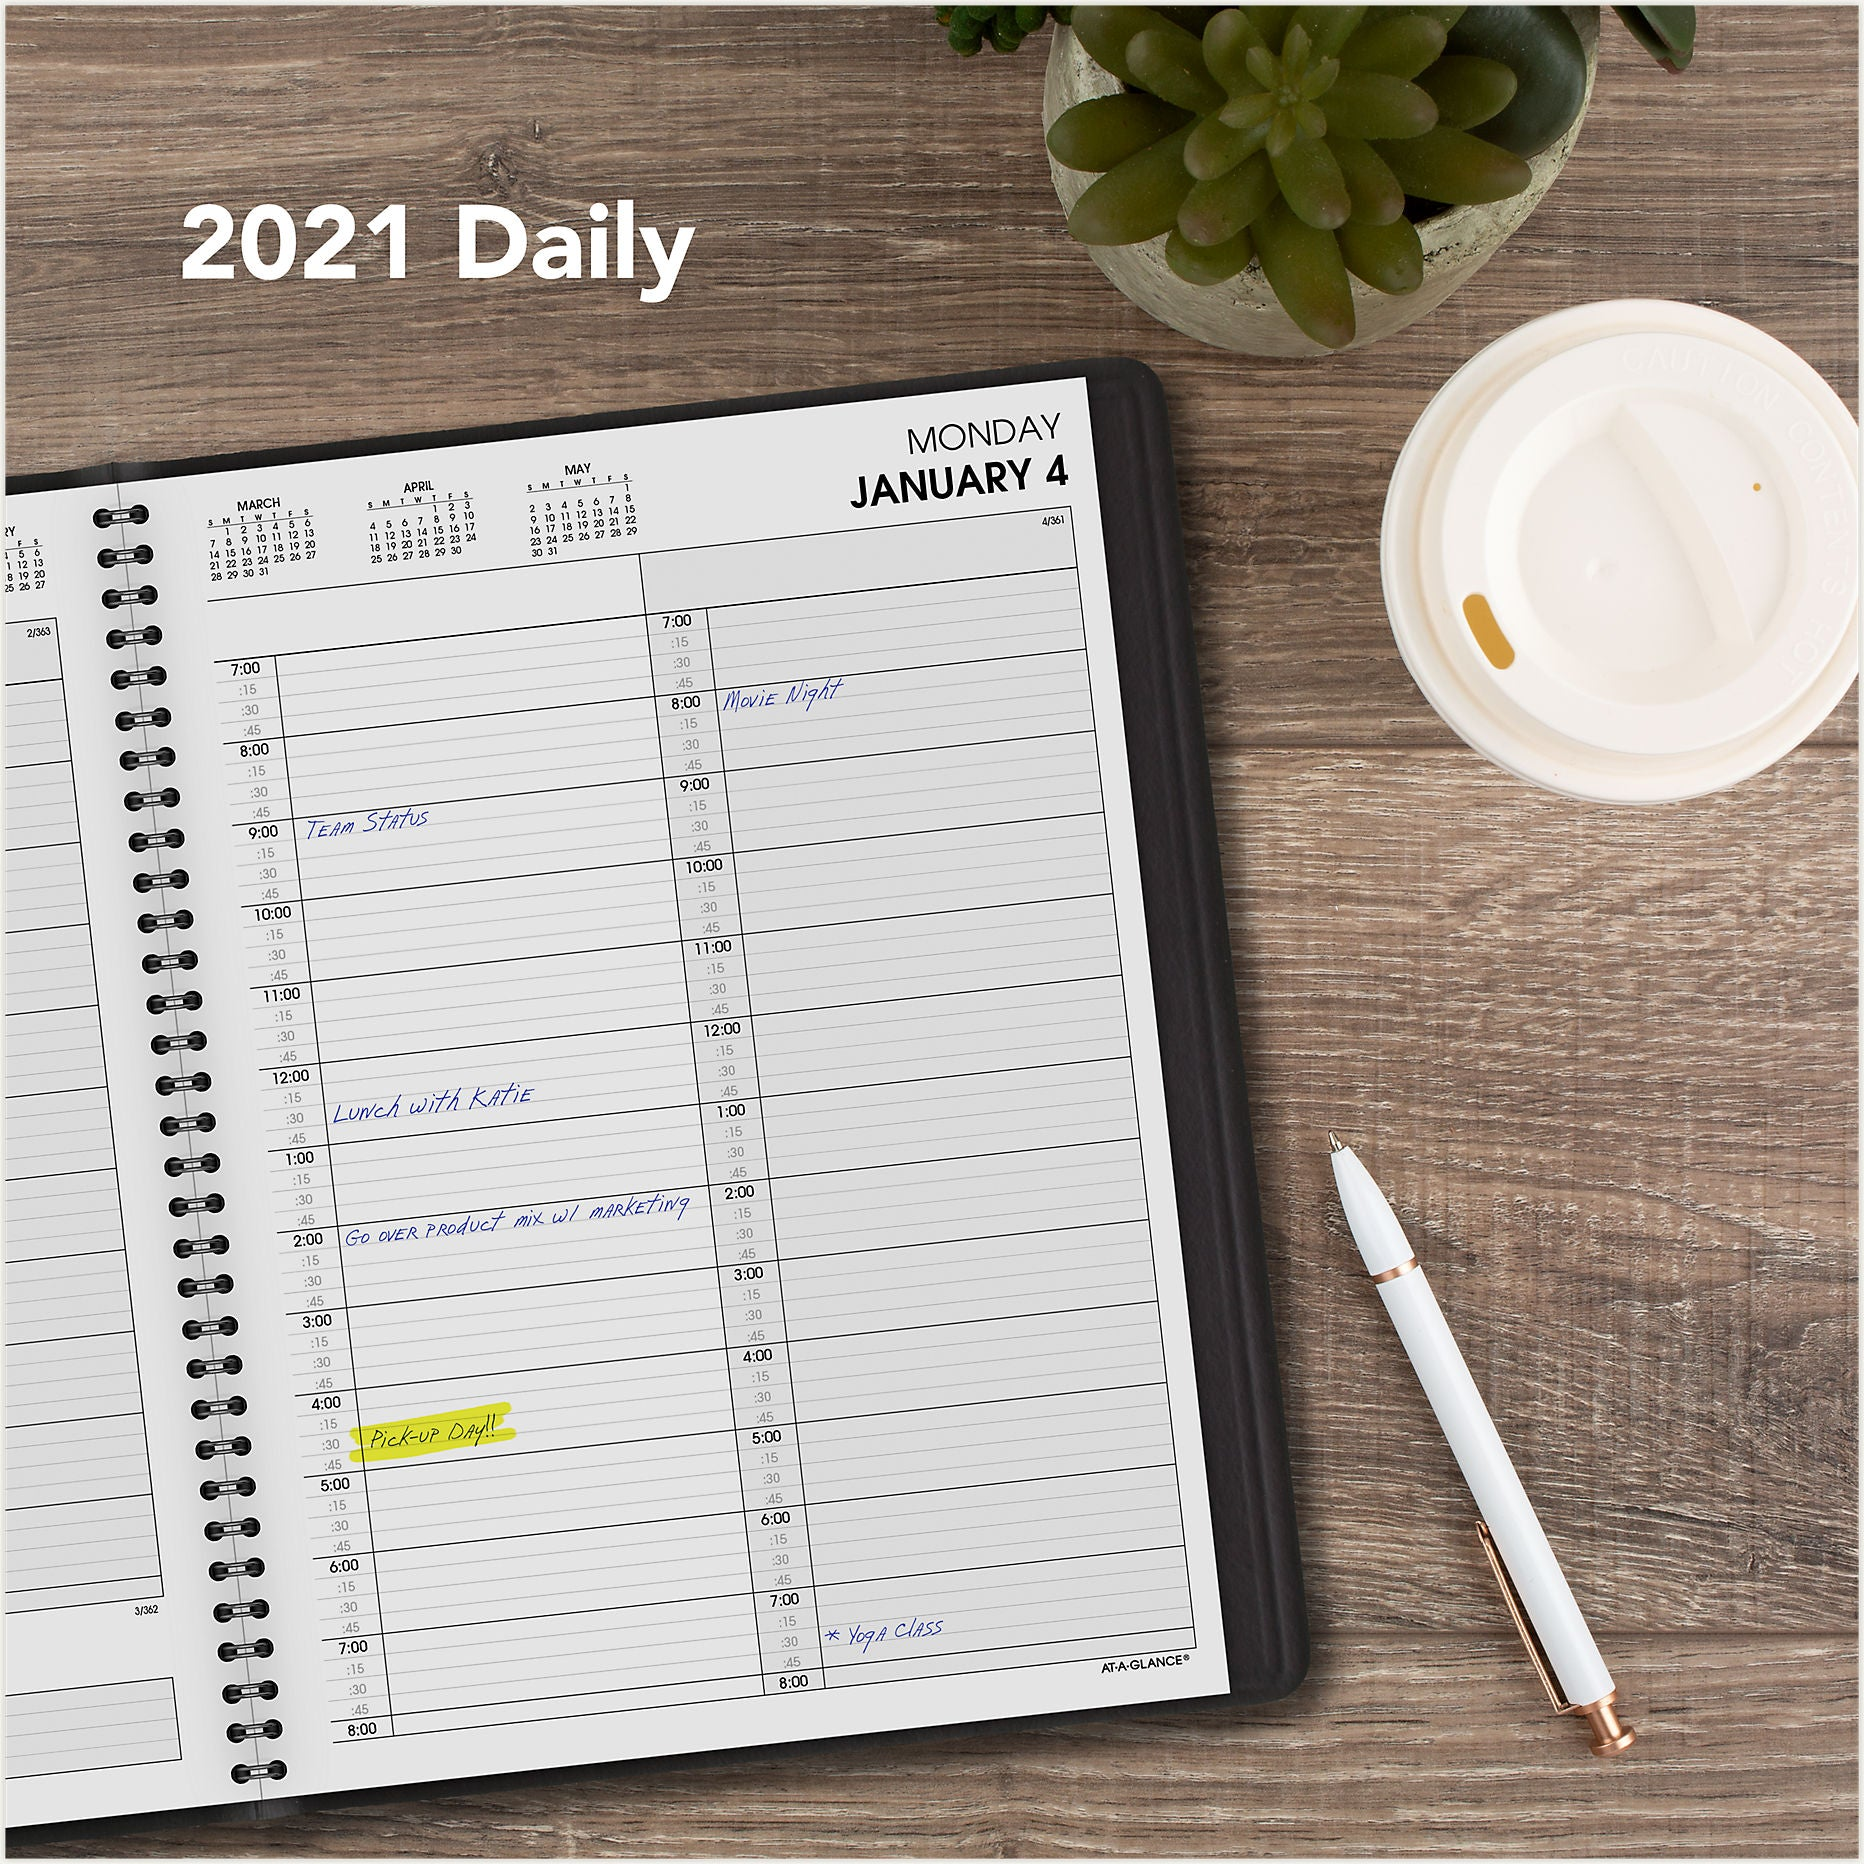 70-222-05  AT A GLANCE CALENDARS 2021